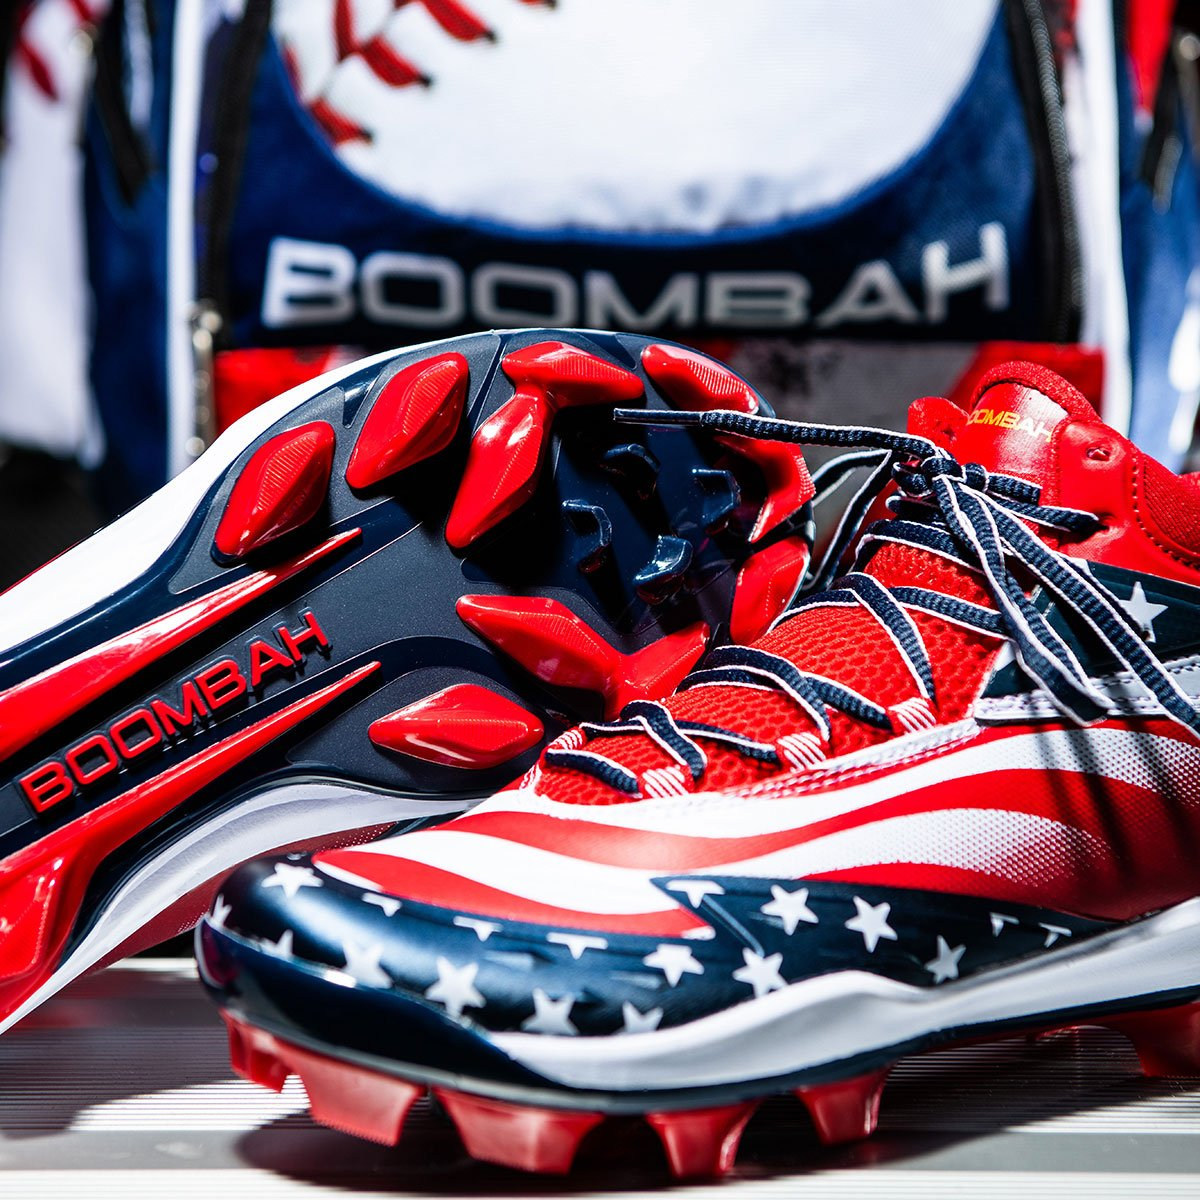 bd8c753afd9 Available in low and mid turfs   molded cleats. Grab yours now!  https   bit.ly 2BajlYH  Boombah  USA  RedWhiteAndBlue  StarsAndStripes  Flag   America ...